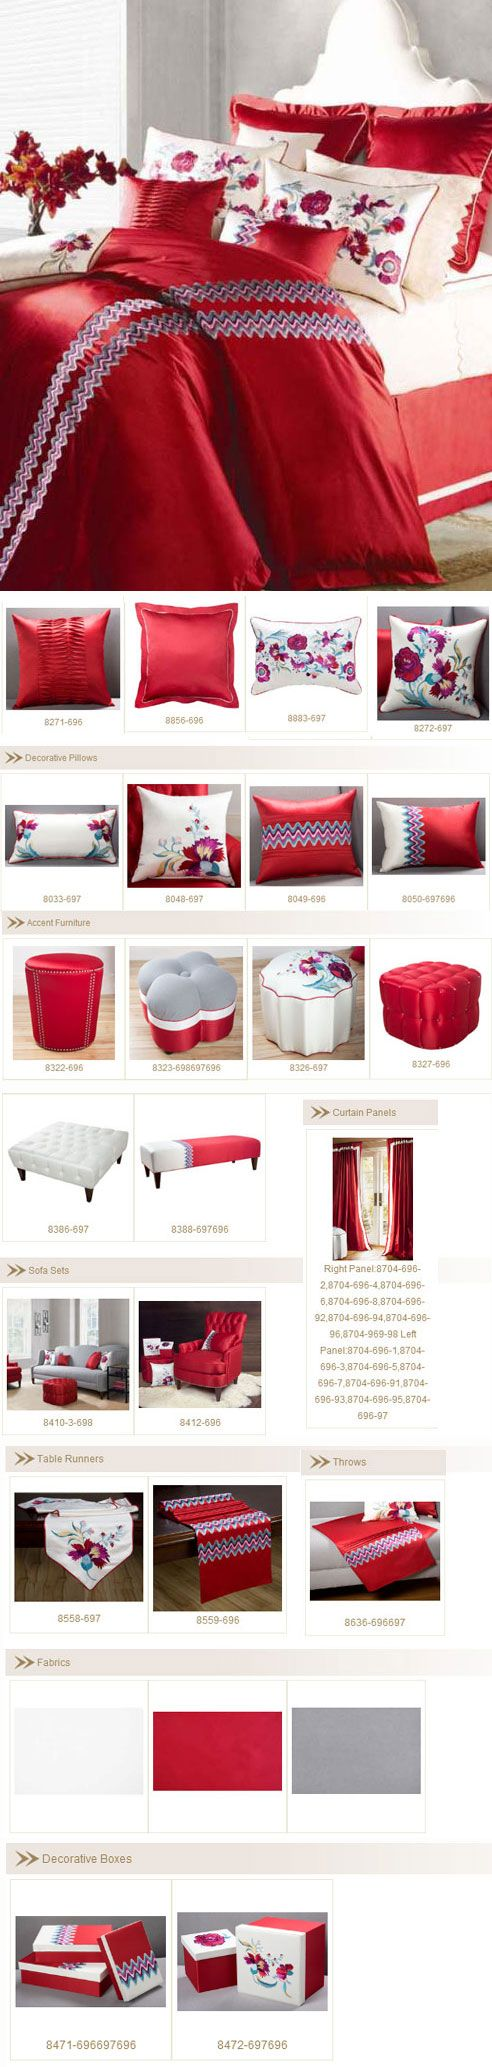 http://www.beddingsuperstore.com/i?store=cat=13058-Furnishings